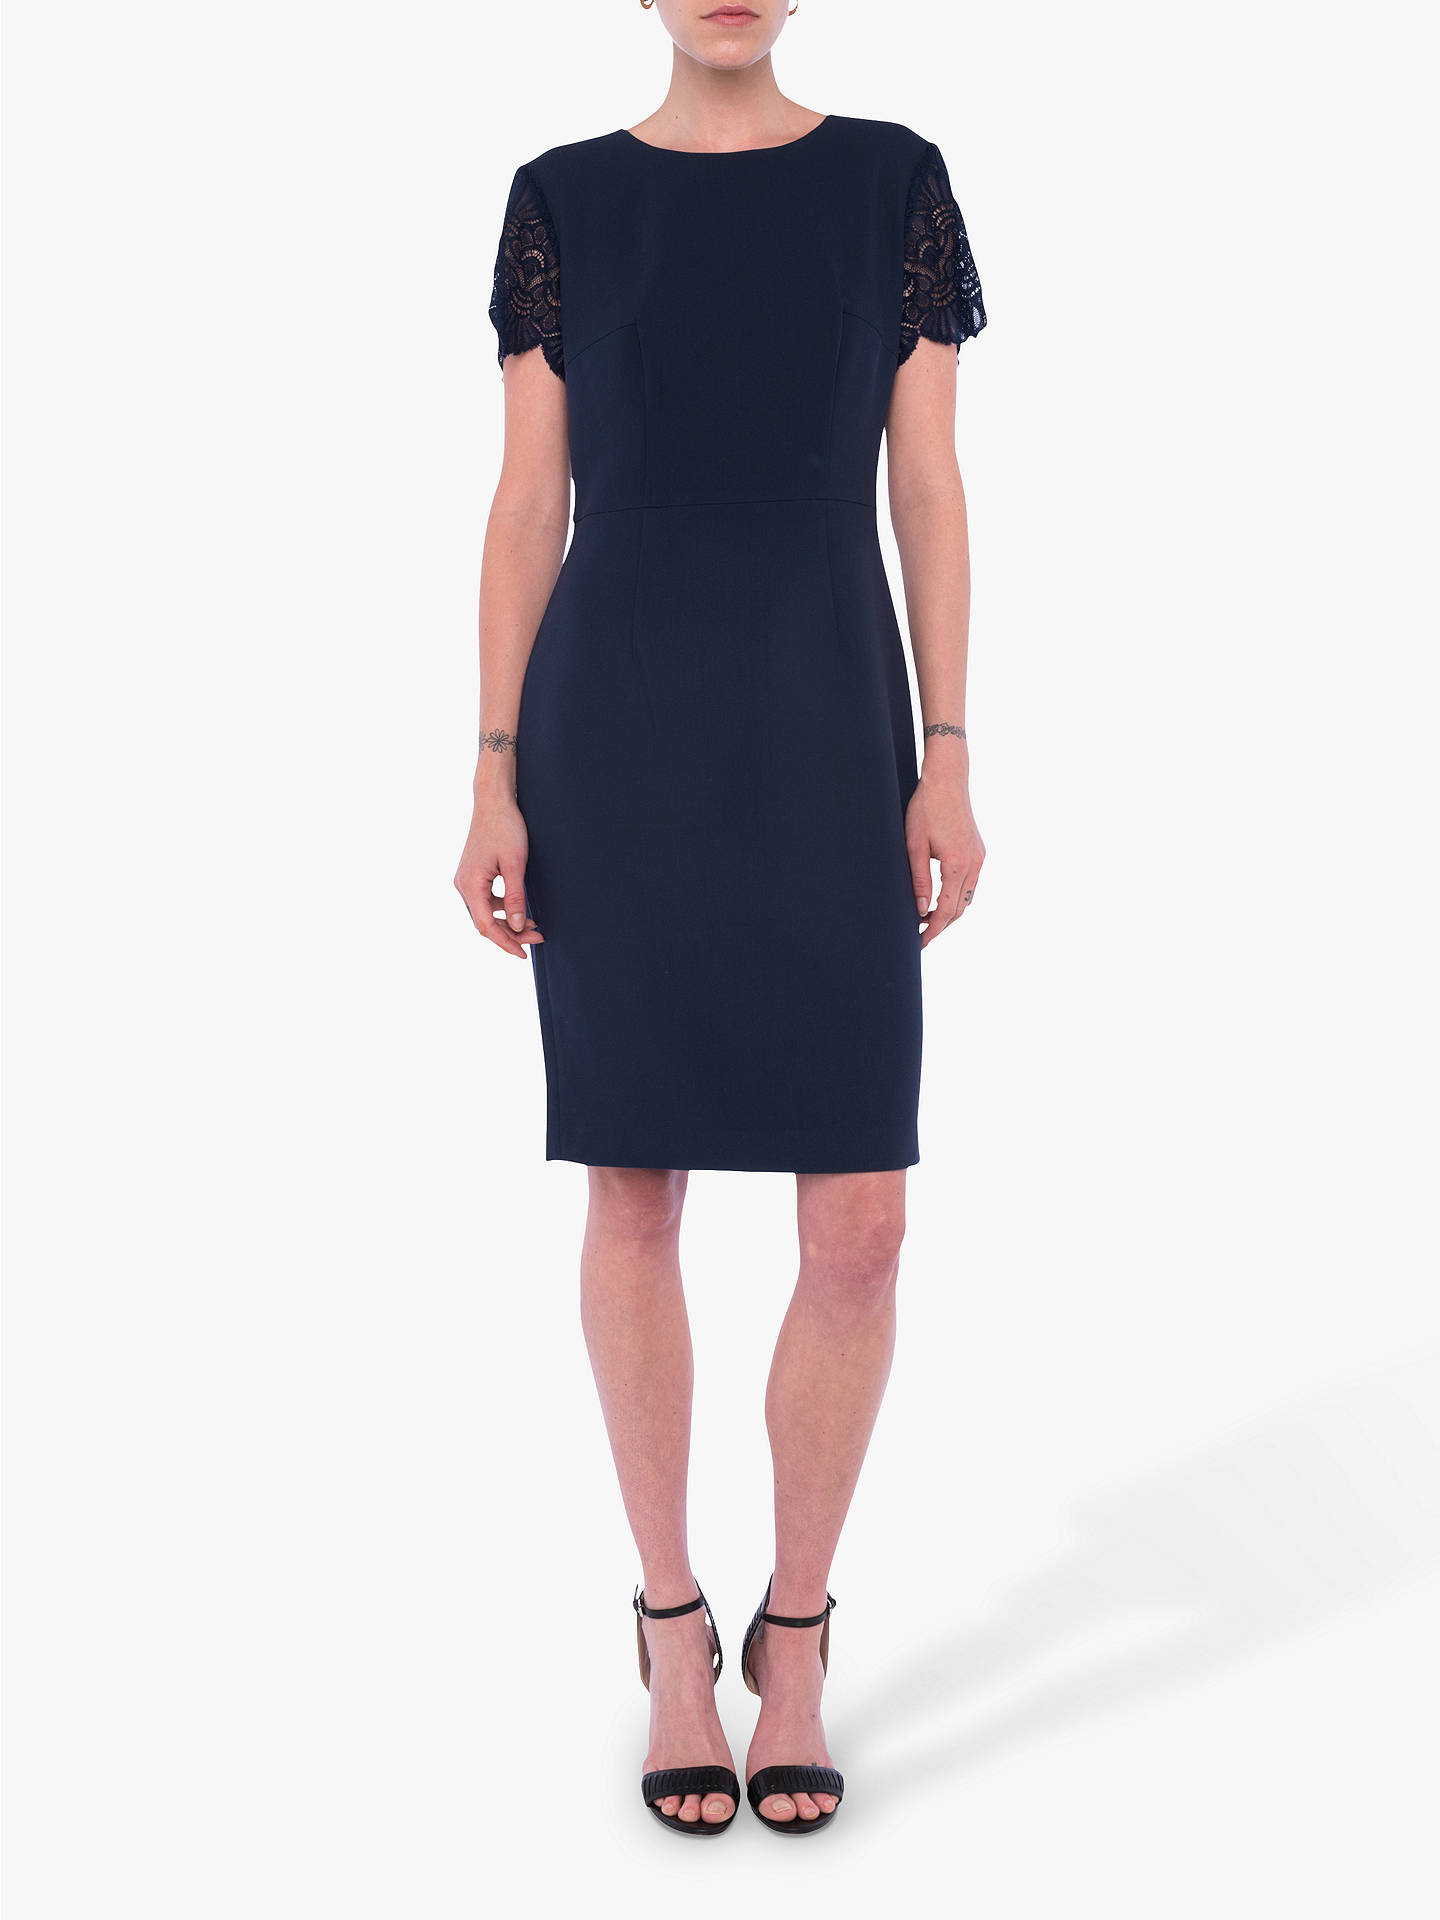 e4ad1f9d1a6f Buy French Connection Whisper Ruth Bodycon Dress, Nocturnal, 8 Online at  johnlewis.com ...